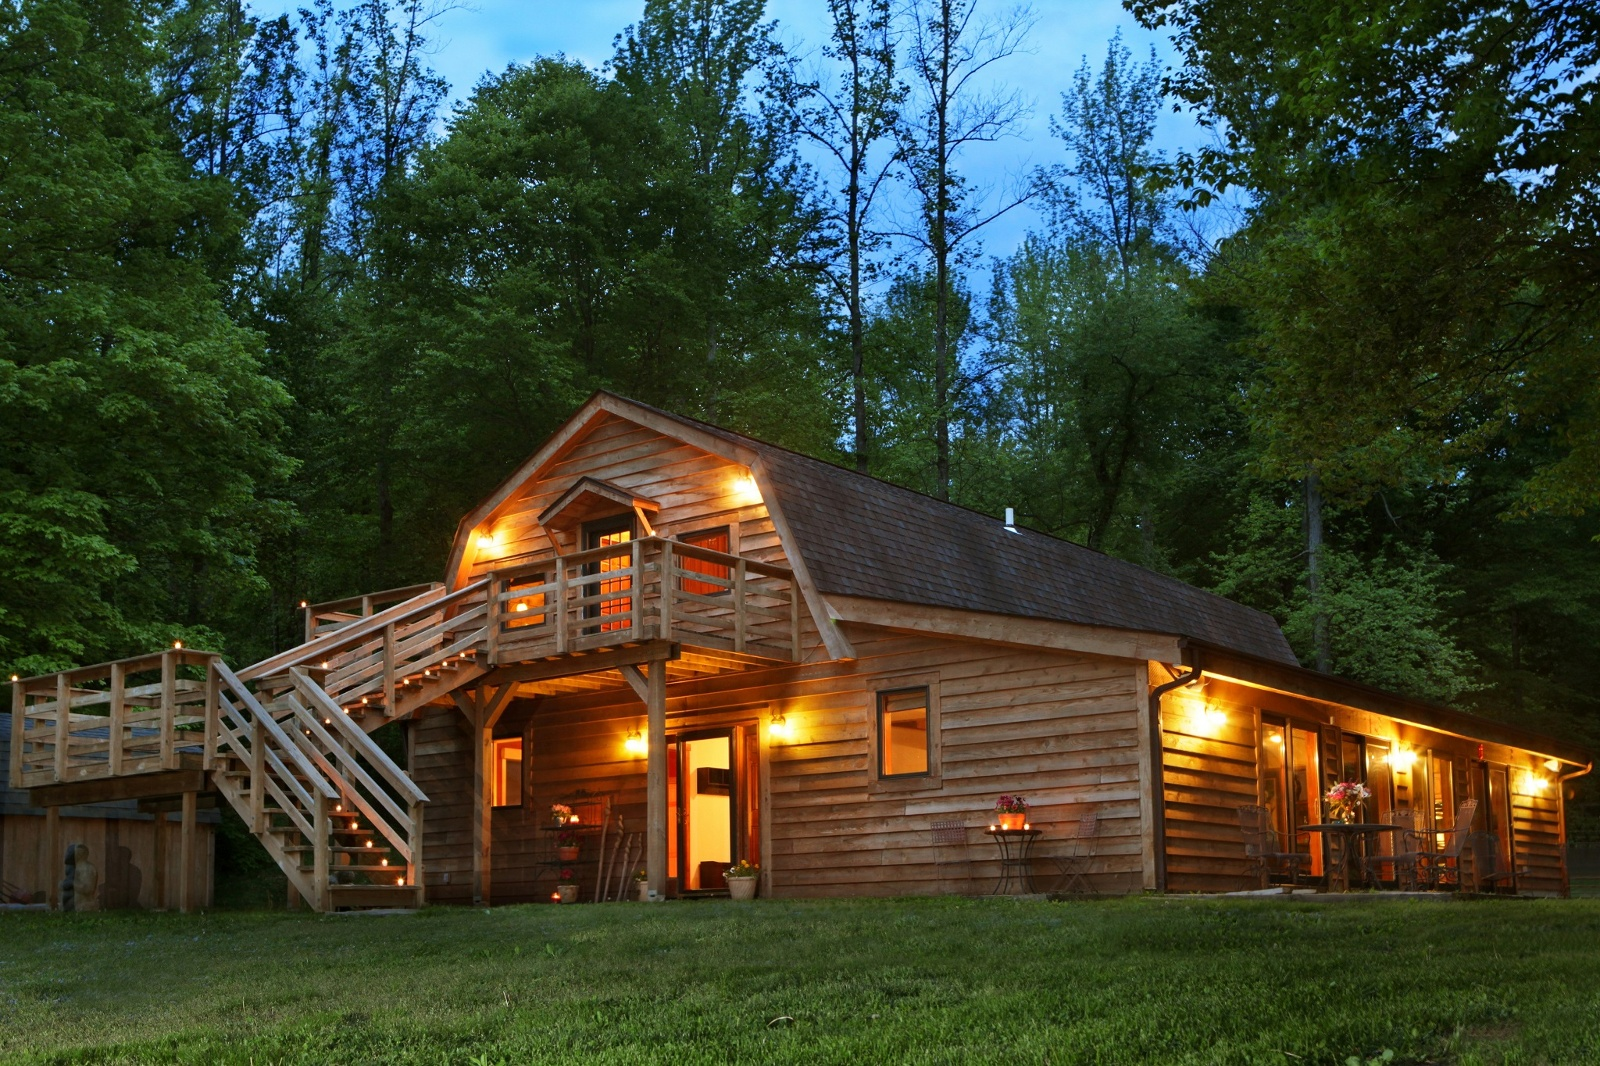 Cabin | galleryhip.com - The Hippest Galleries!